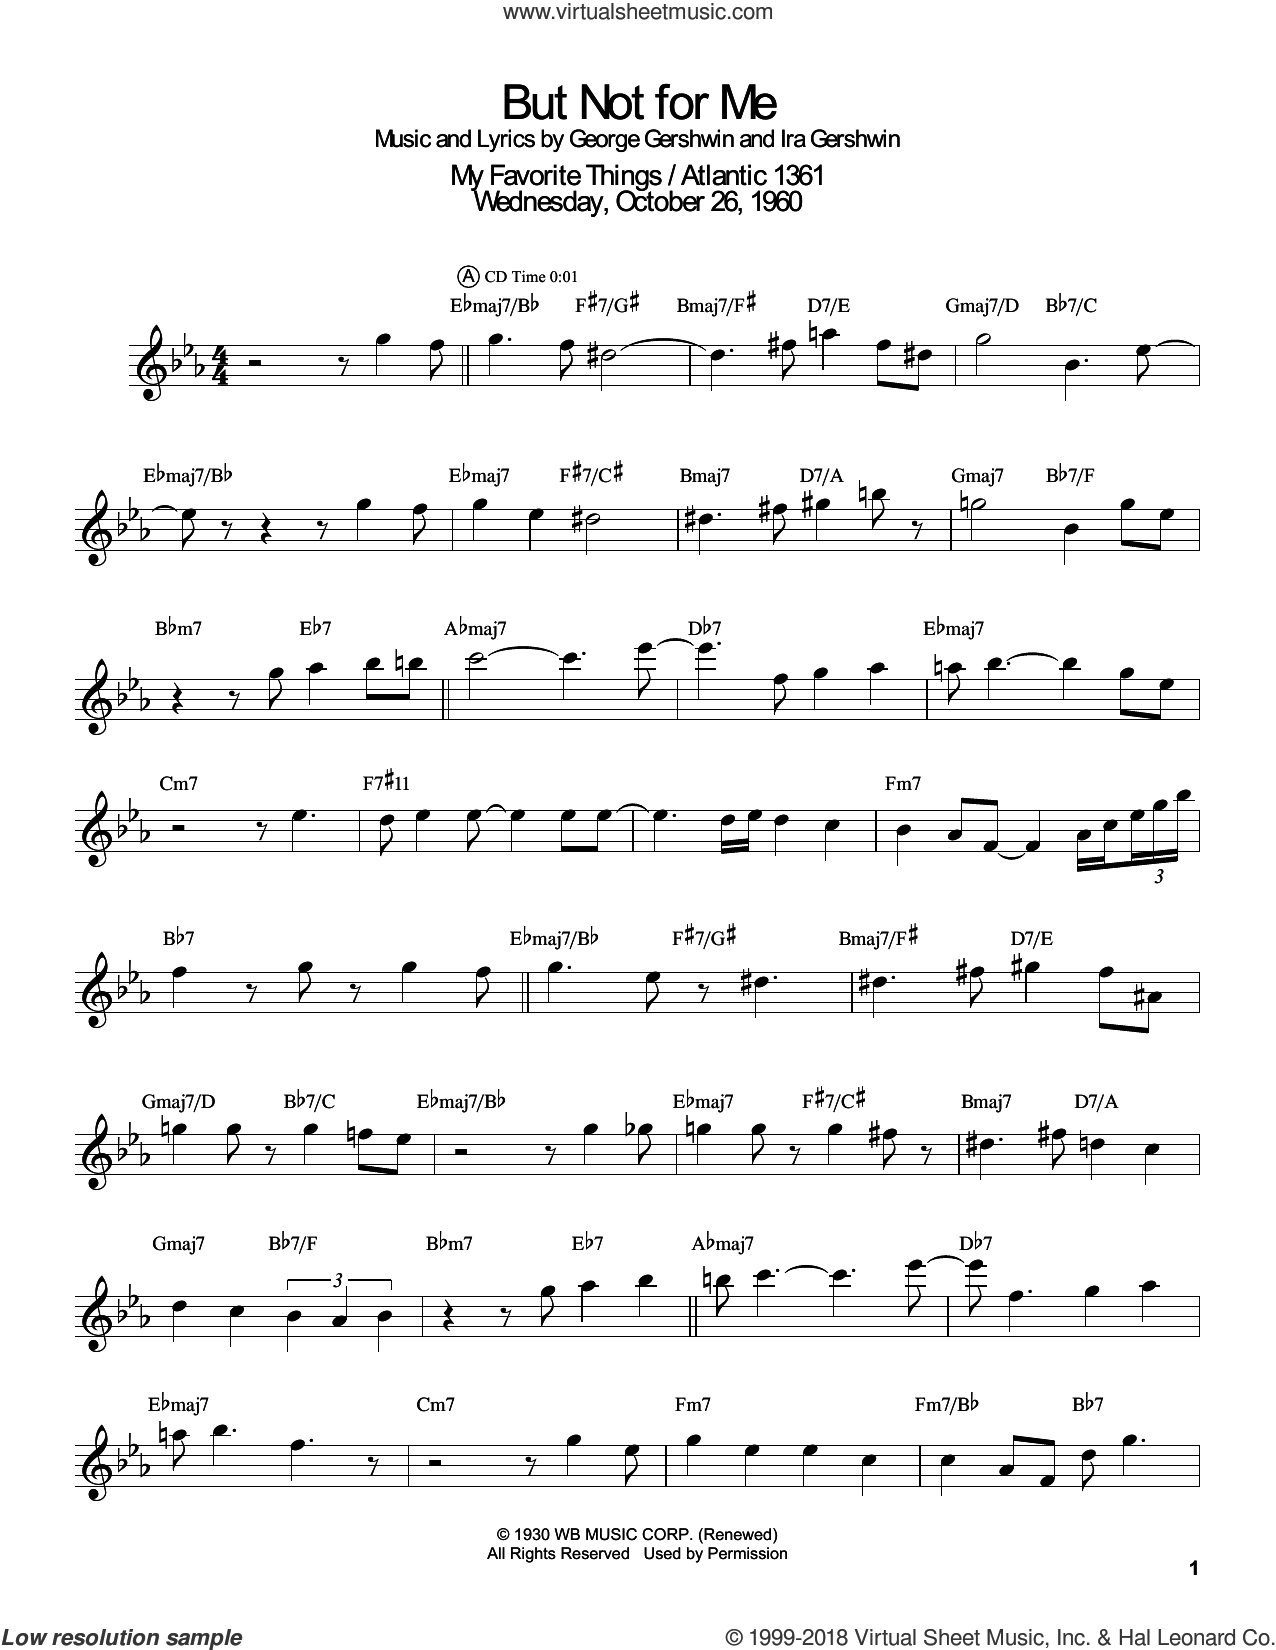 But Not For Me sheet music for tenor saxophone solo (transcription) by John Coltrane, Ketty Lester, Masaya Yamaguchi, George Gershwin and Ira Gershwin, intermediate tenor saxophone (transcription)